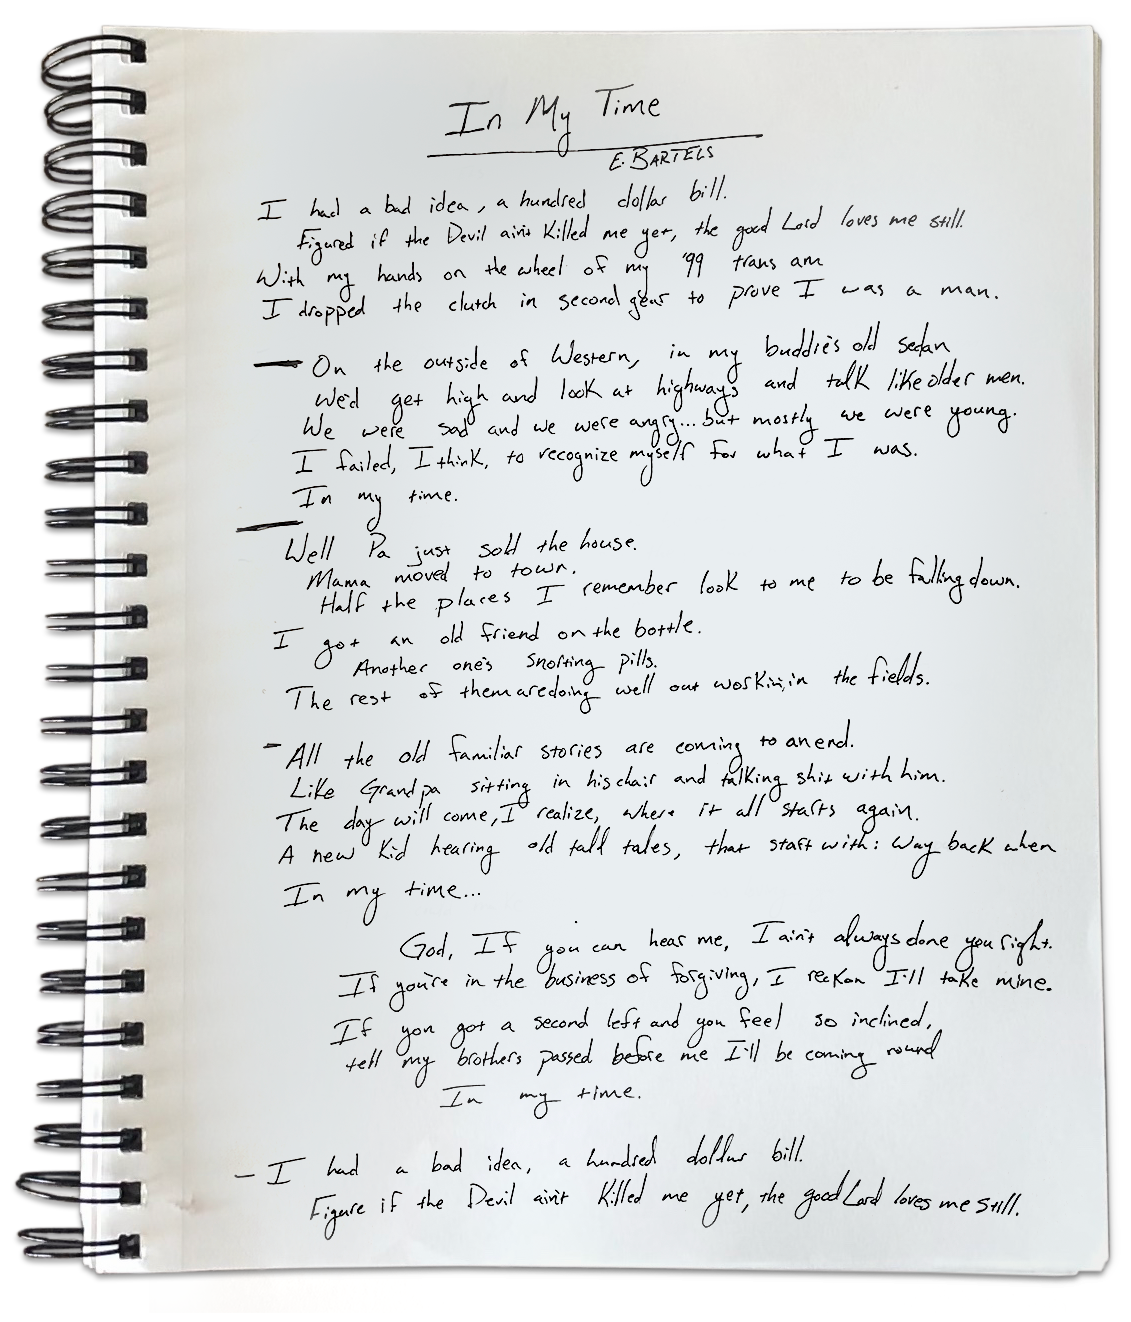 InMyTime-LyricSheet-Notebook.png